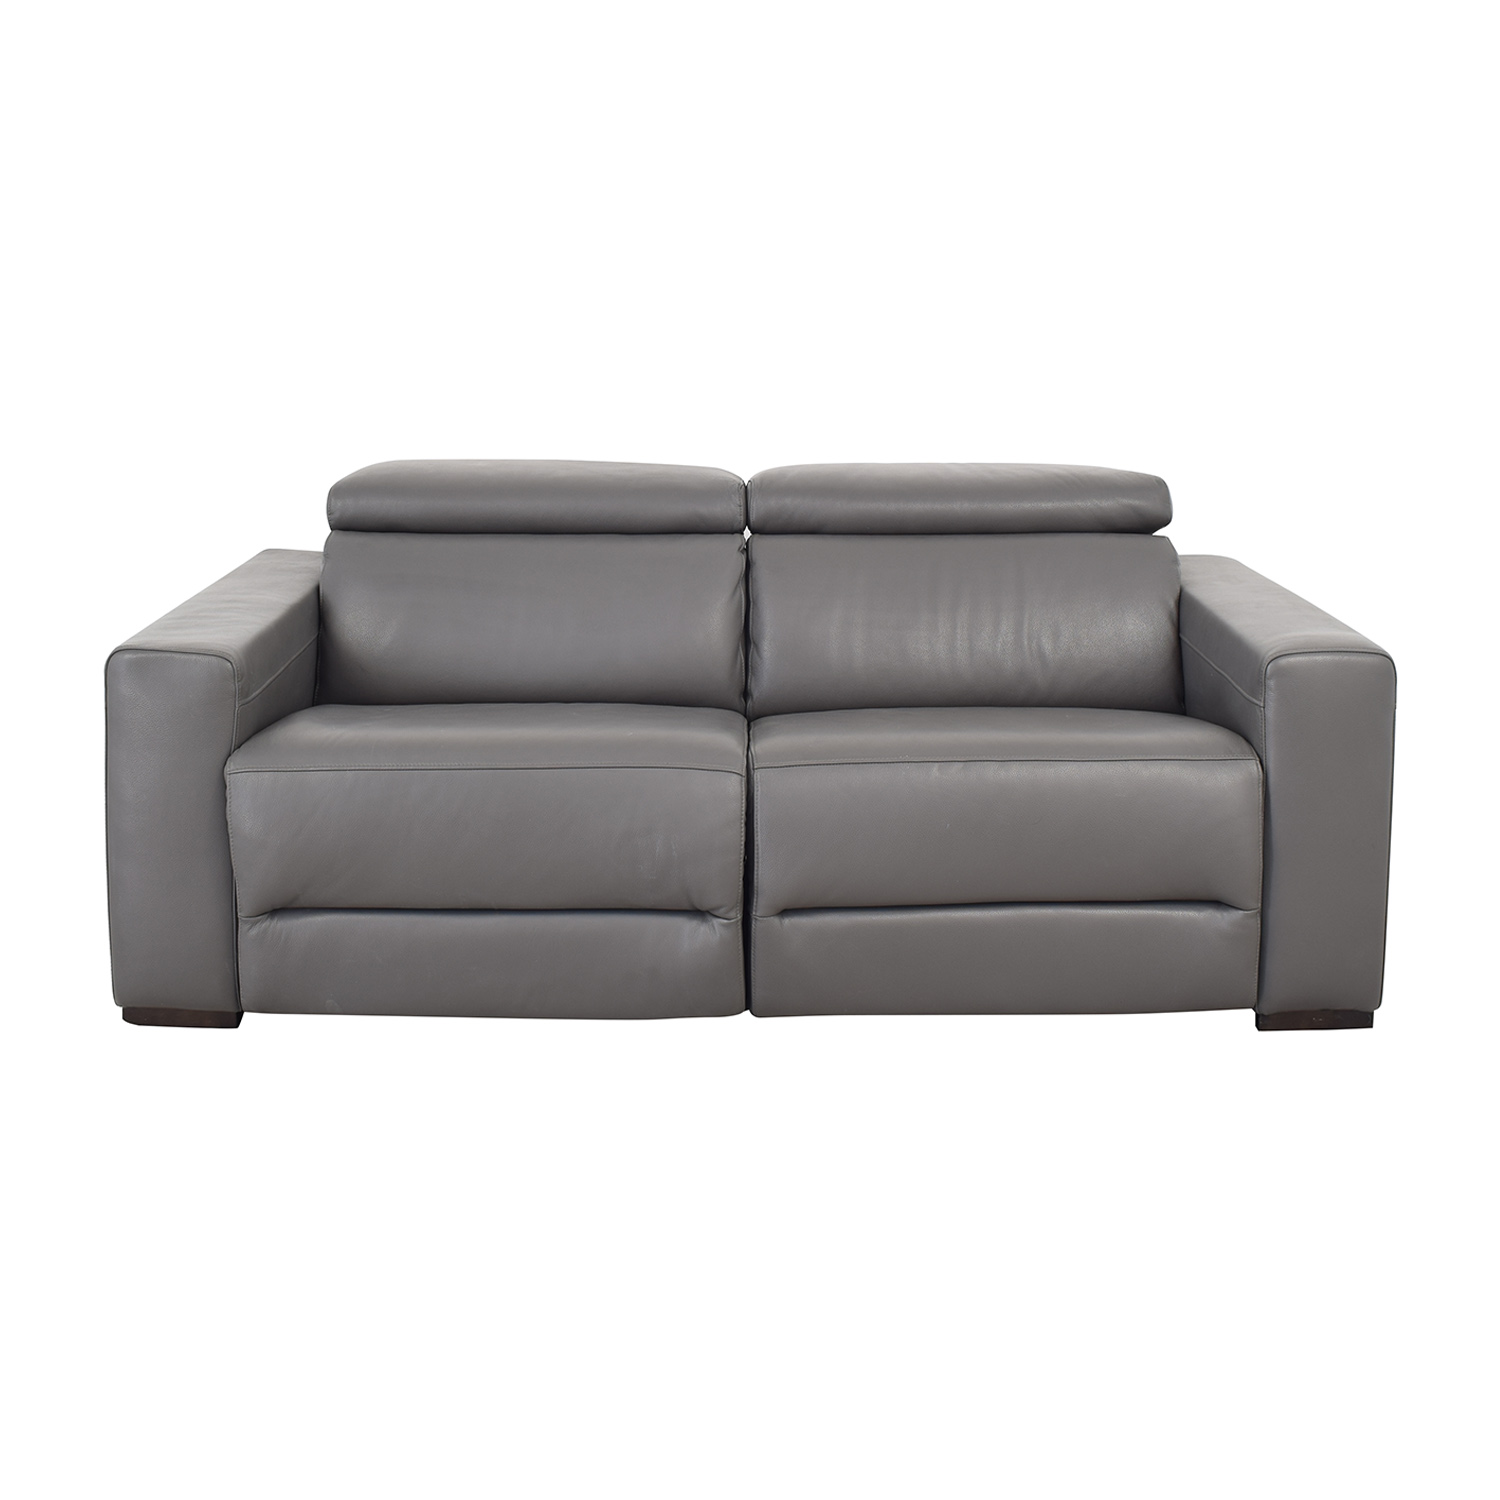 Macy's Macy's Nevio 2-Piece Power Reclining Sofa pa